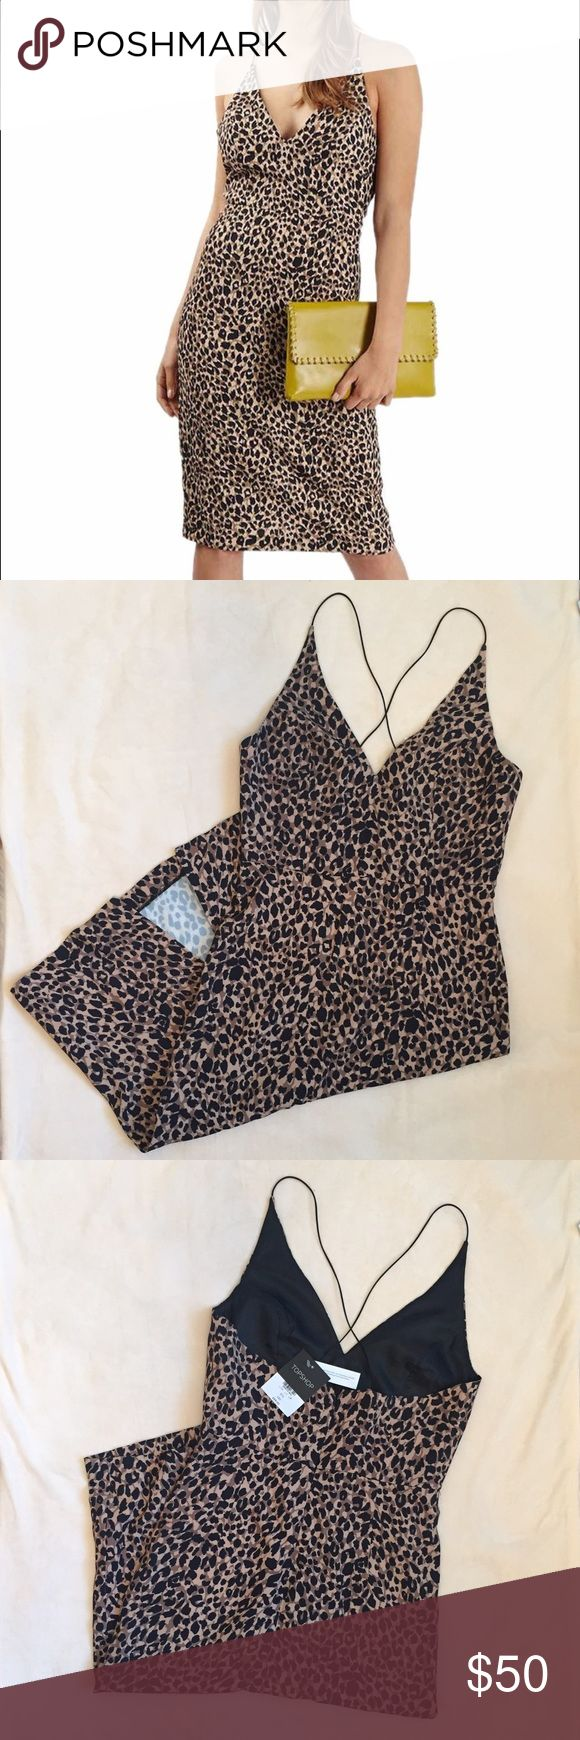 """Bnwt-TOPSHOP Animal Print Body-Con Dress. Size 4 Brand New with Tag TOPSHOP Animal print BodyCon Dress.  *Please see measurement/sizing guide written below for correct fitting.  *This dress appear to be size8 in UK and size 4 in US.  Measurements were taken with clothes laying flat, relaxed and unstretched.  Bust: 16""""  Waist: 13.5""""  Shoulder to Hem(length): 42""""    ▫️Feel free to send me a message with any questions and inquiries. 👍 Topshop Dresses Midi"""